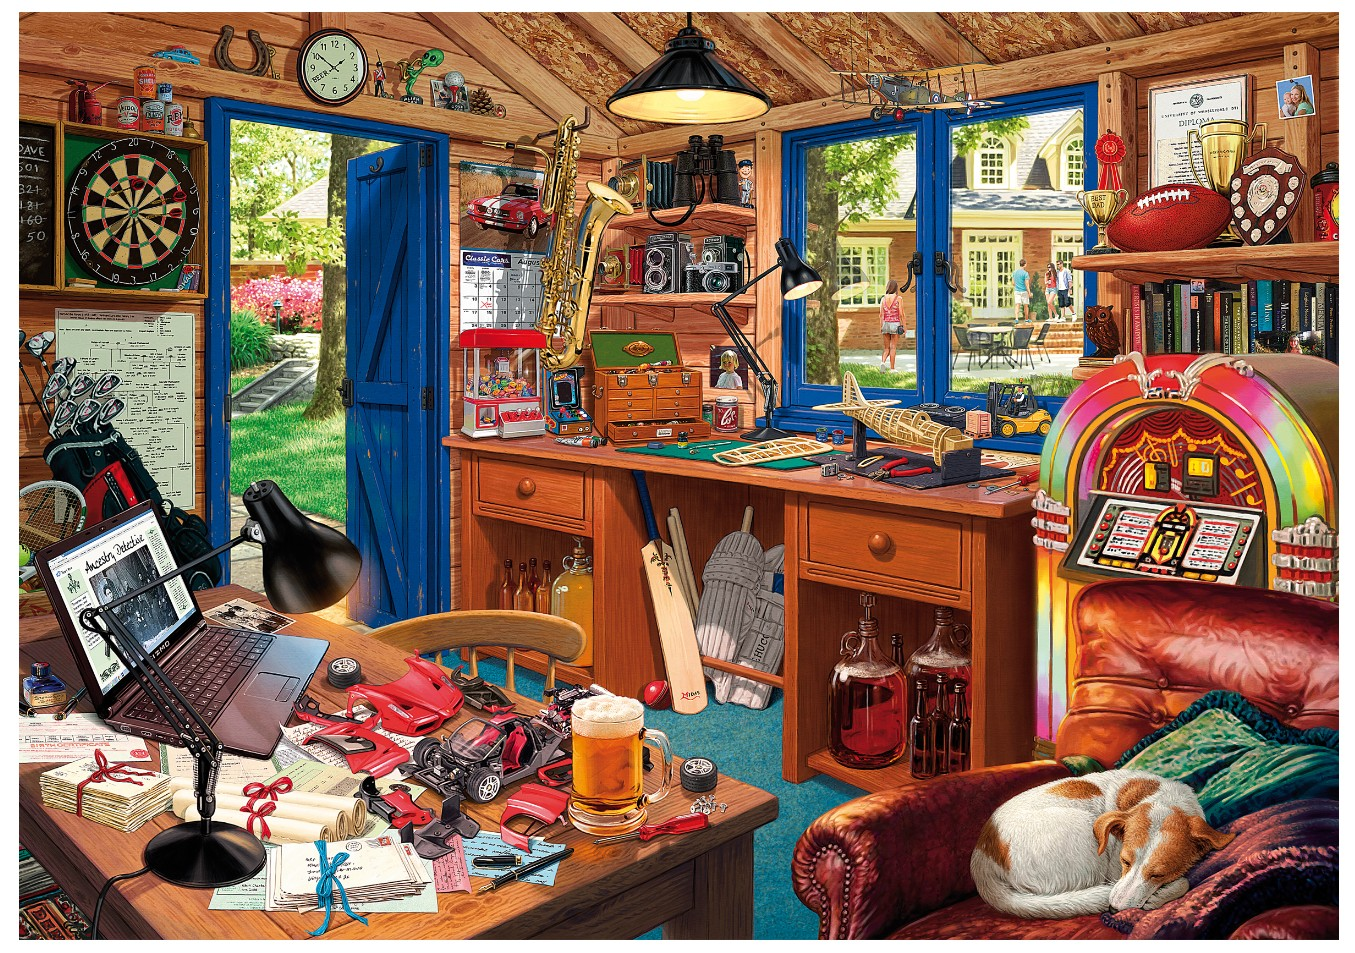 wentworth-holzpuzzle-man-cave-250-teile-puzzle-wentworth-791902